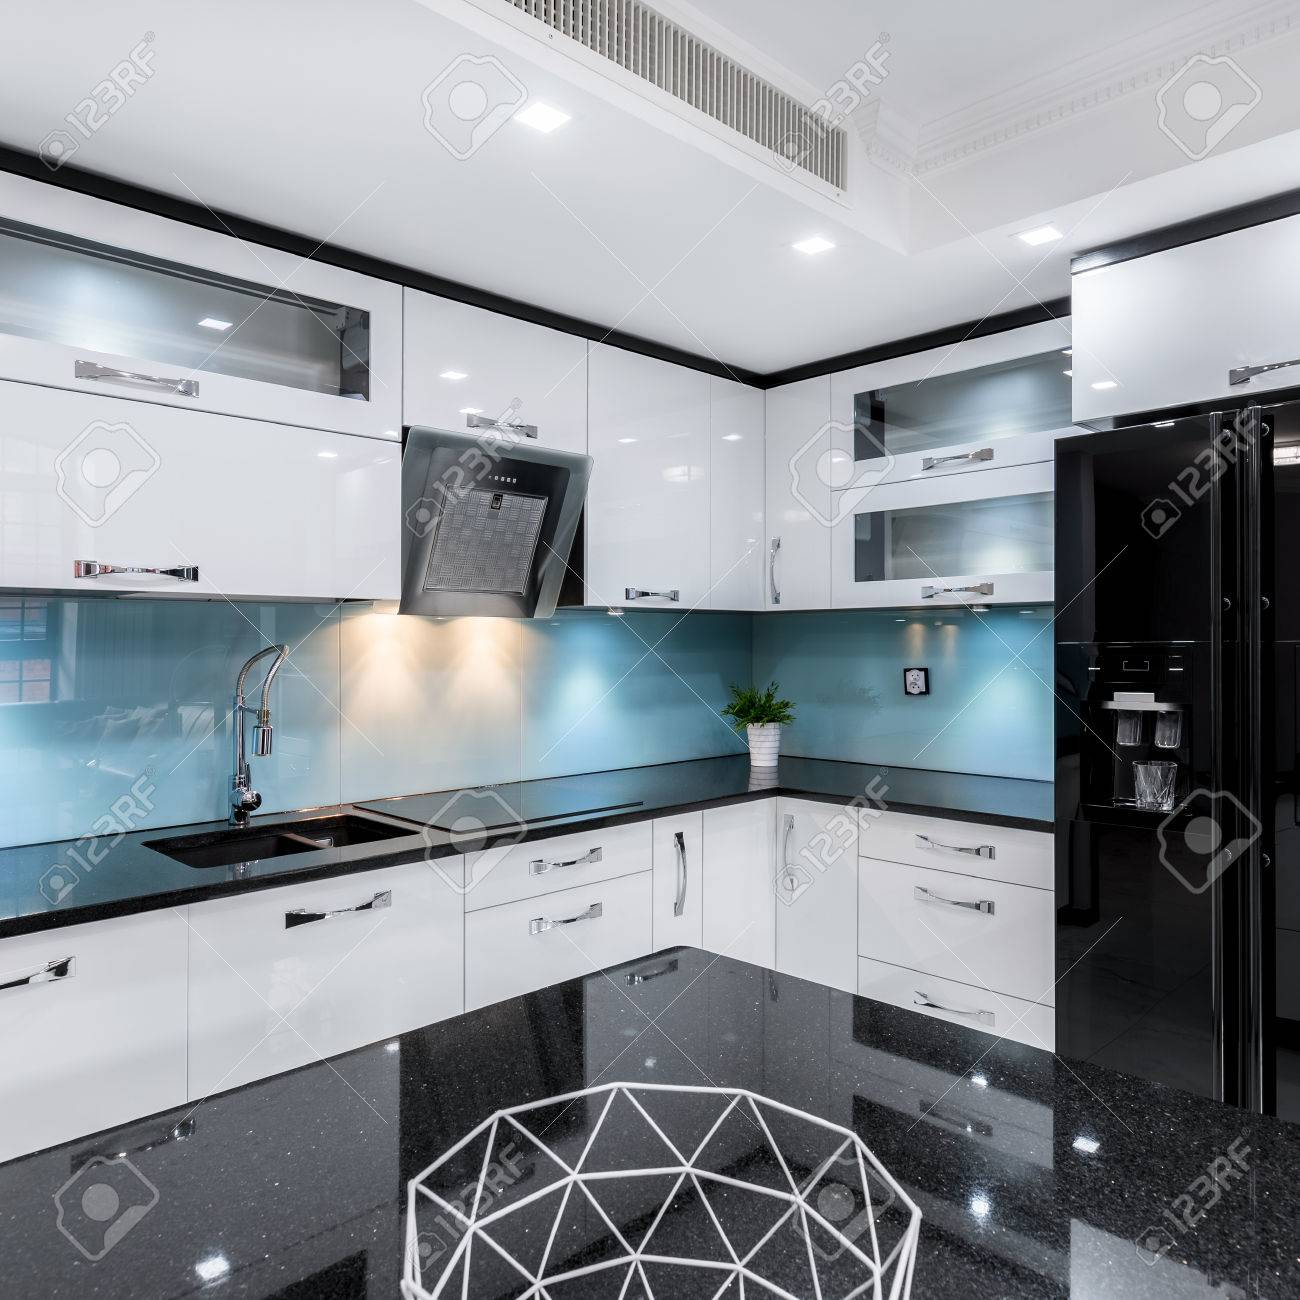 Modern Black And White High Gloss Kitchen With Table And Countertop